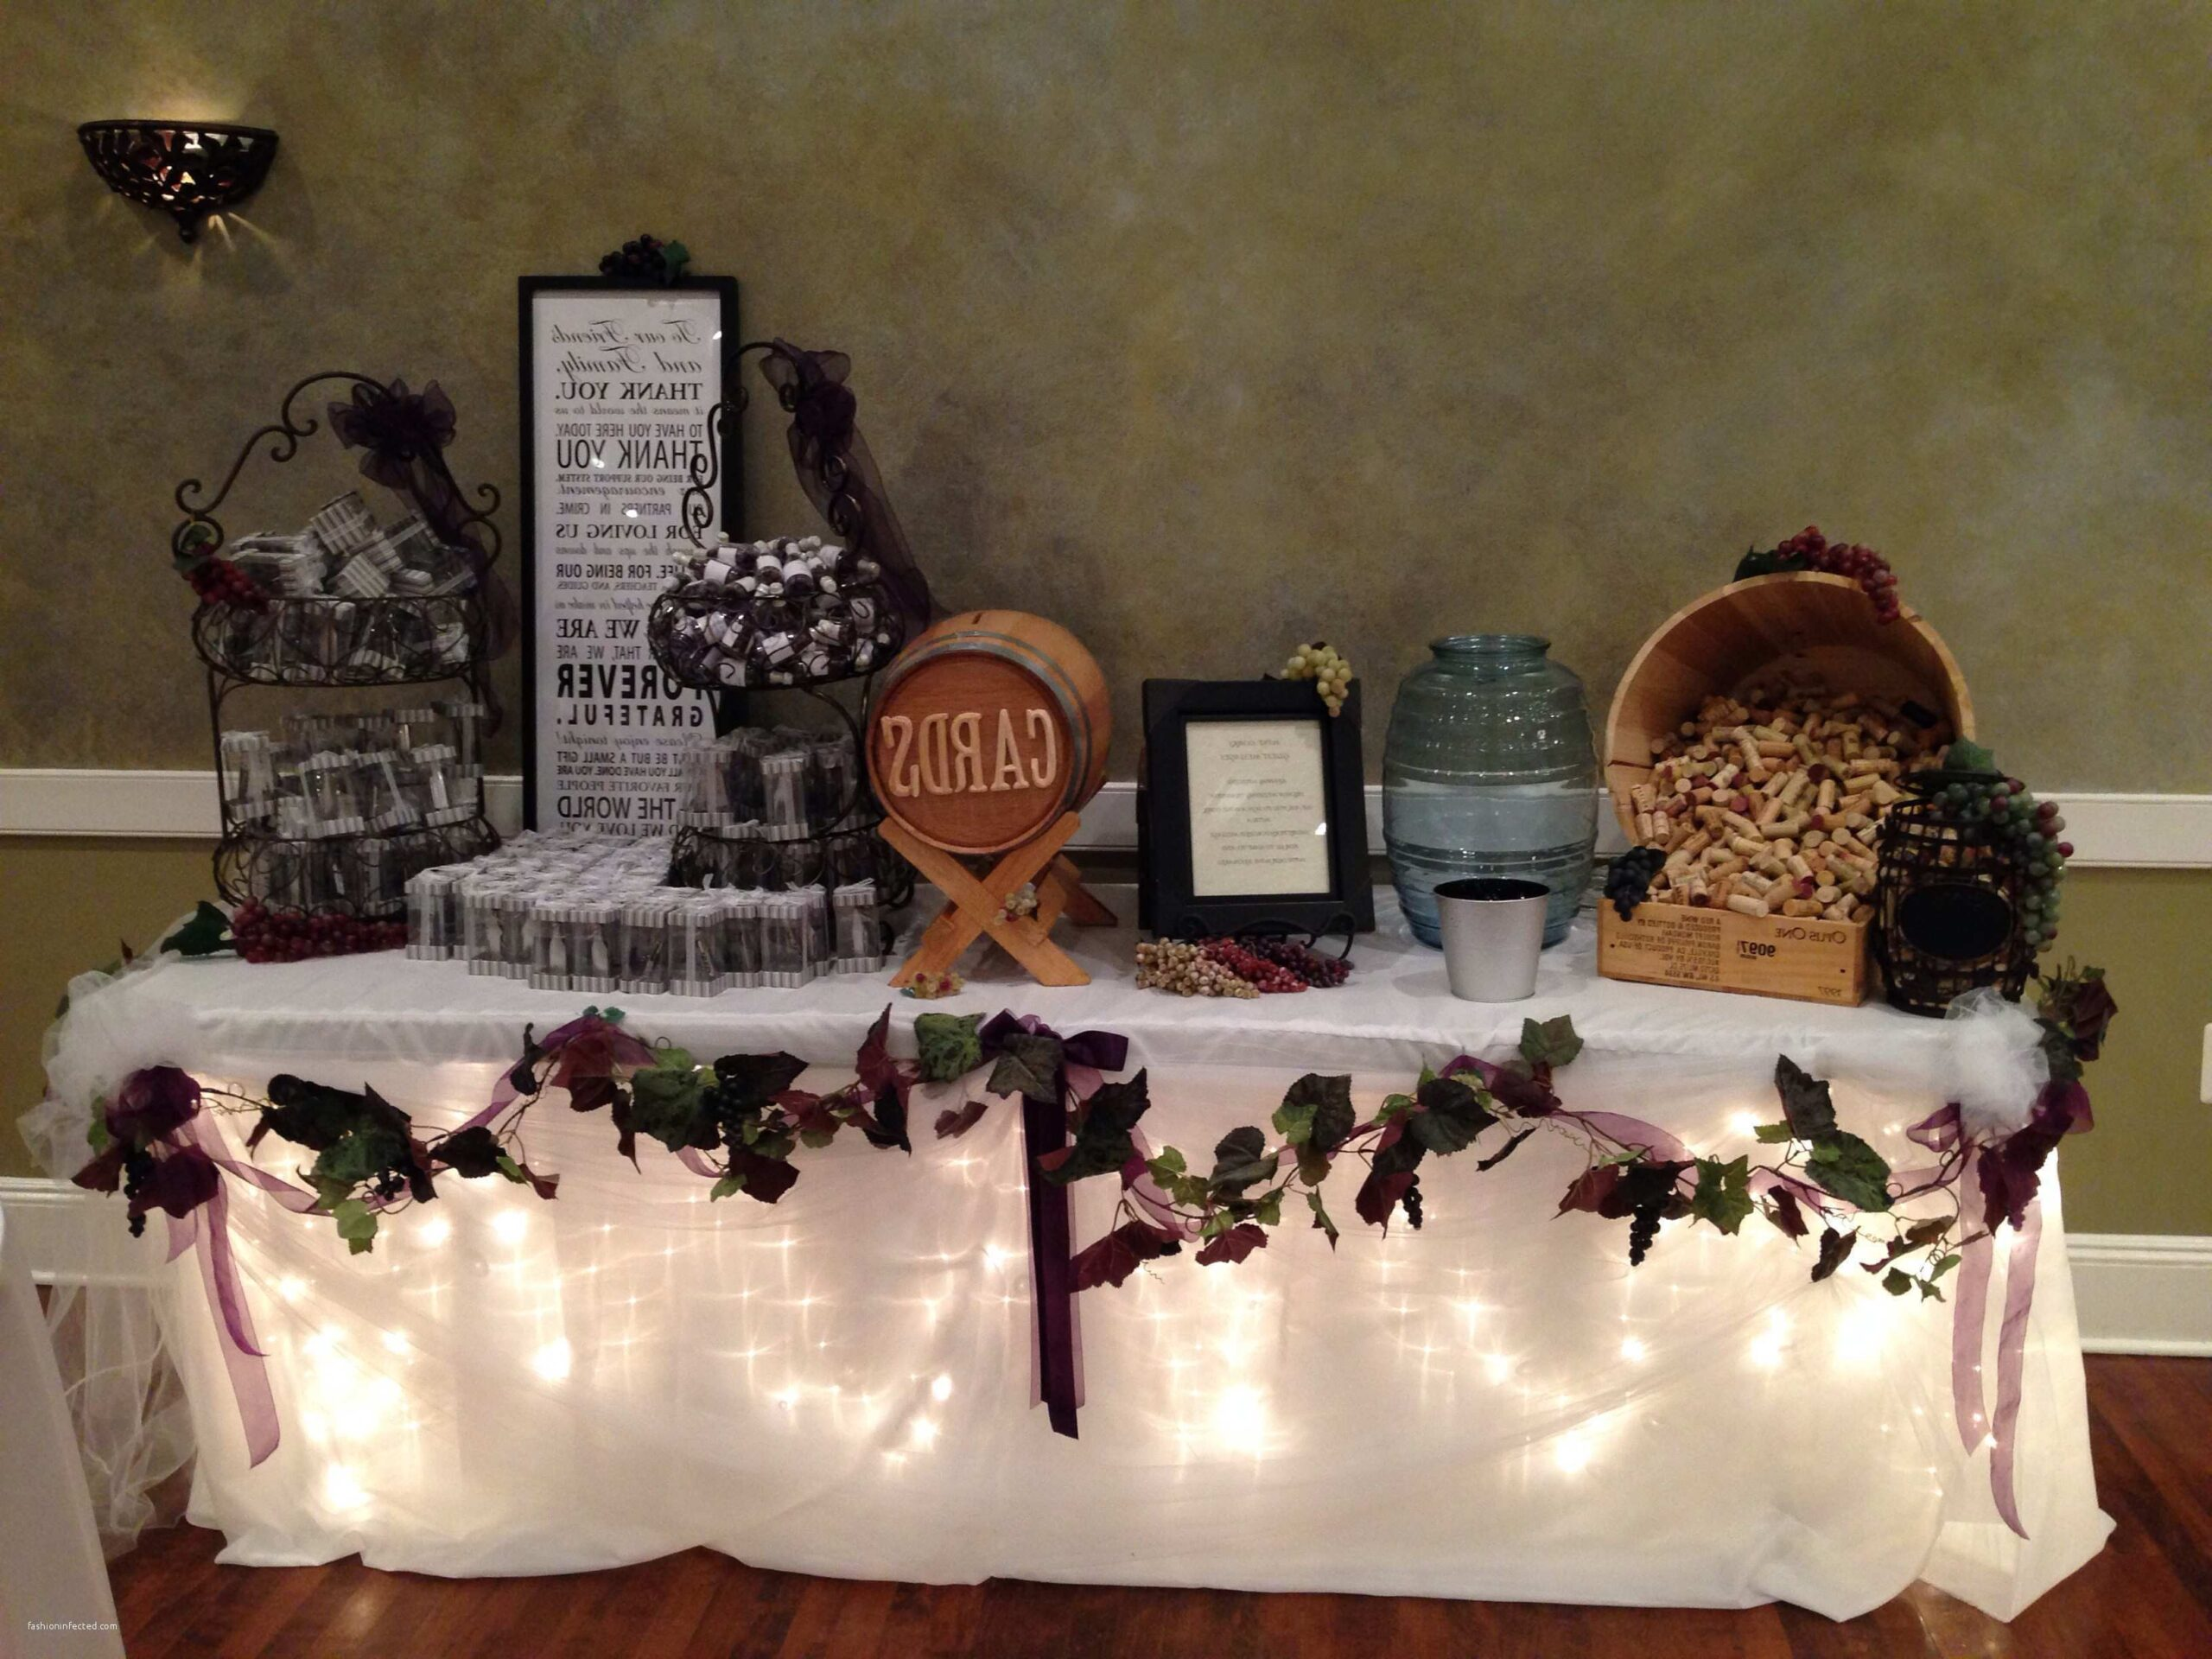 Wedding Gift Ideas - What To Get The Newlyweds For Their Big Day